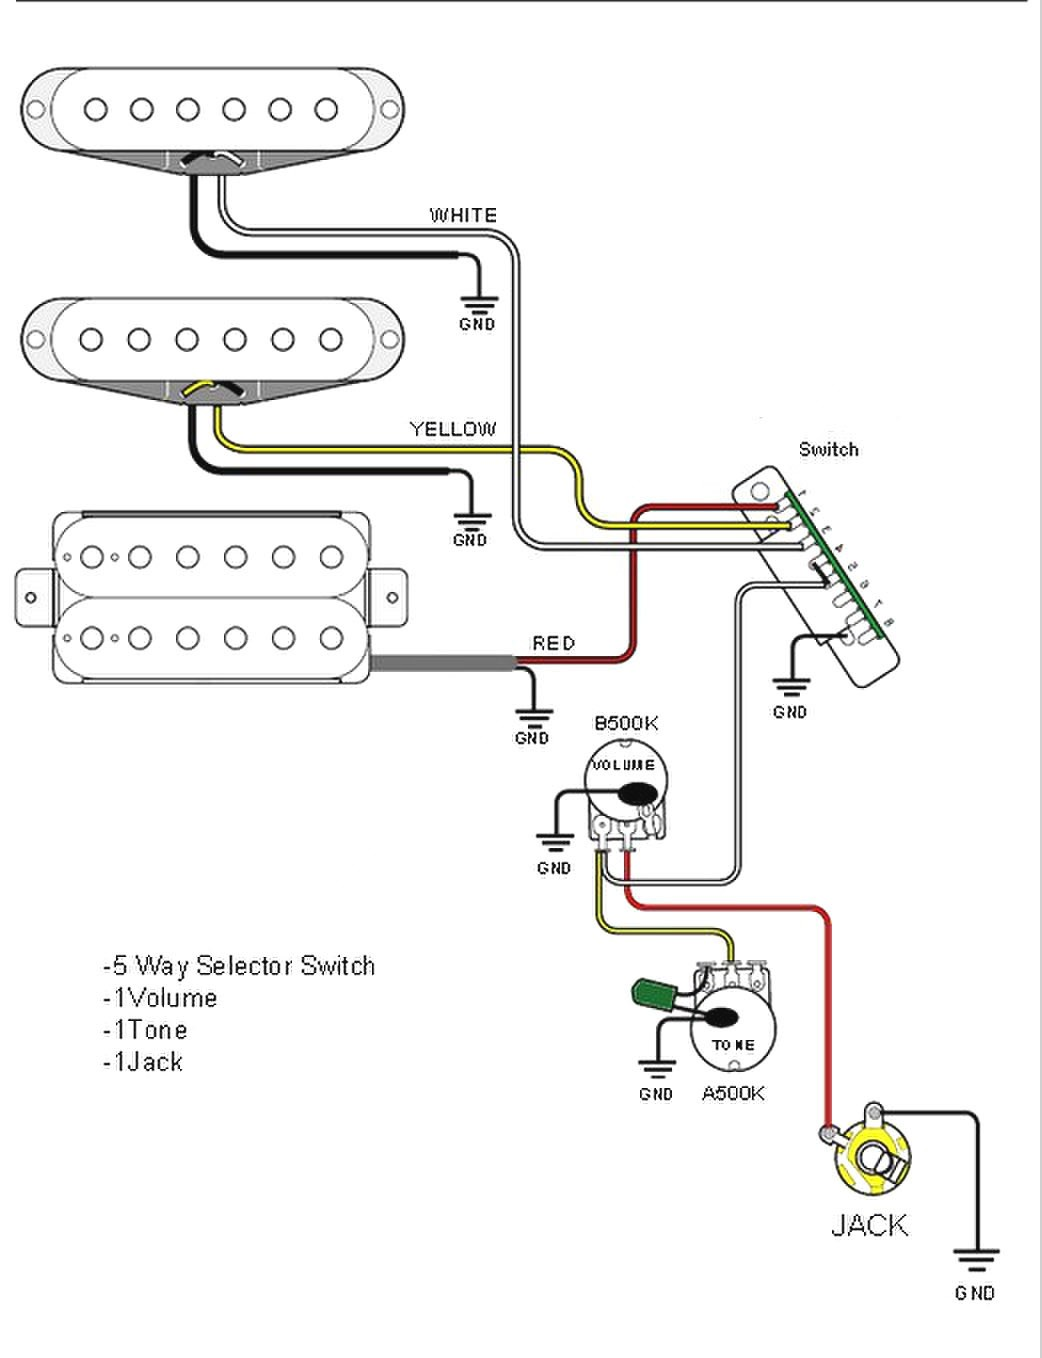 1954 Fender Stratocaster Wiring Diagram Not Lossing For Squier Library Rh 79 Codingcommunity De Patent